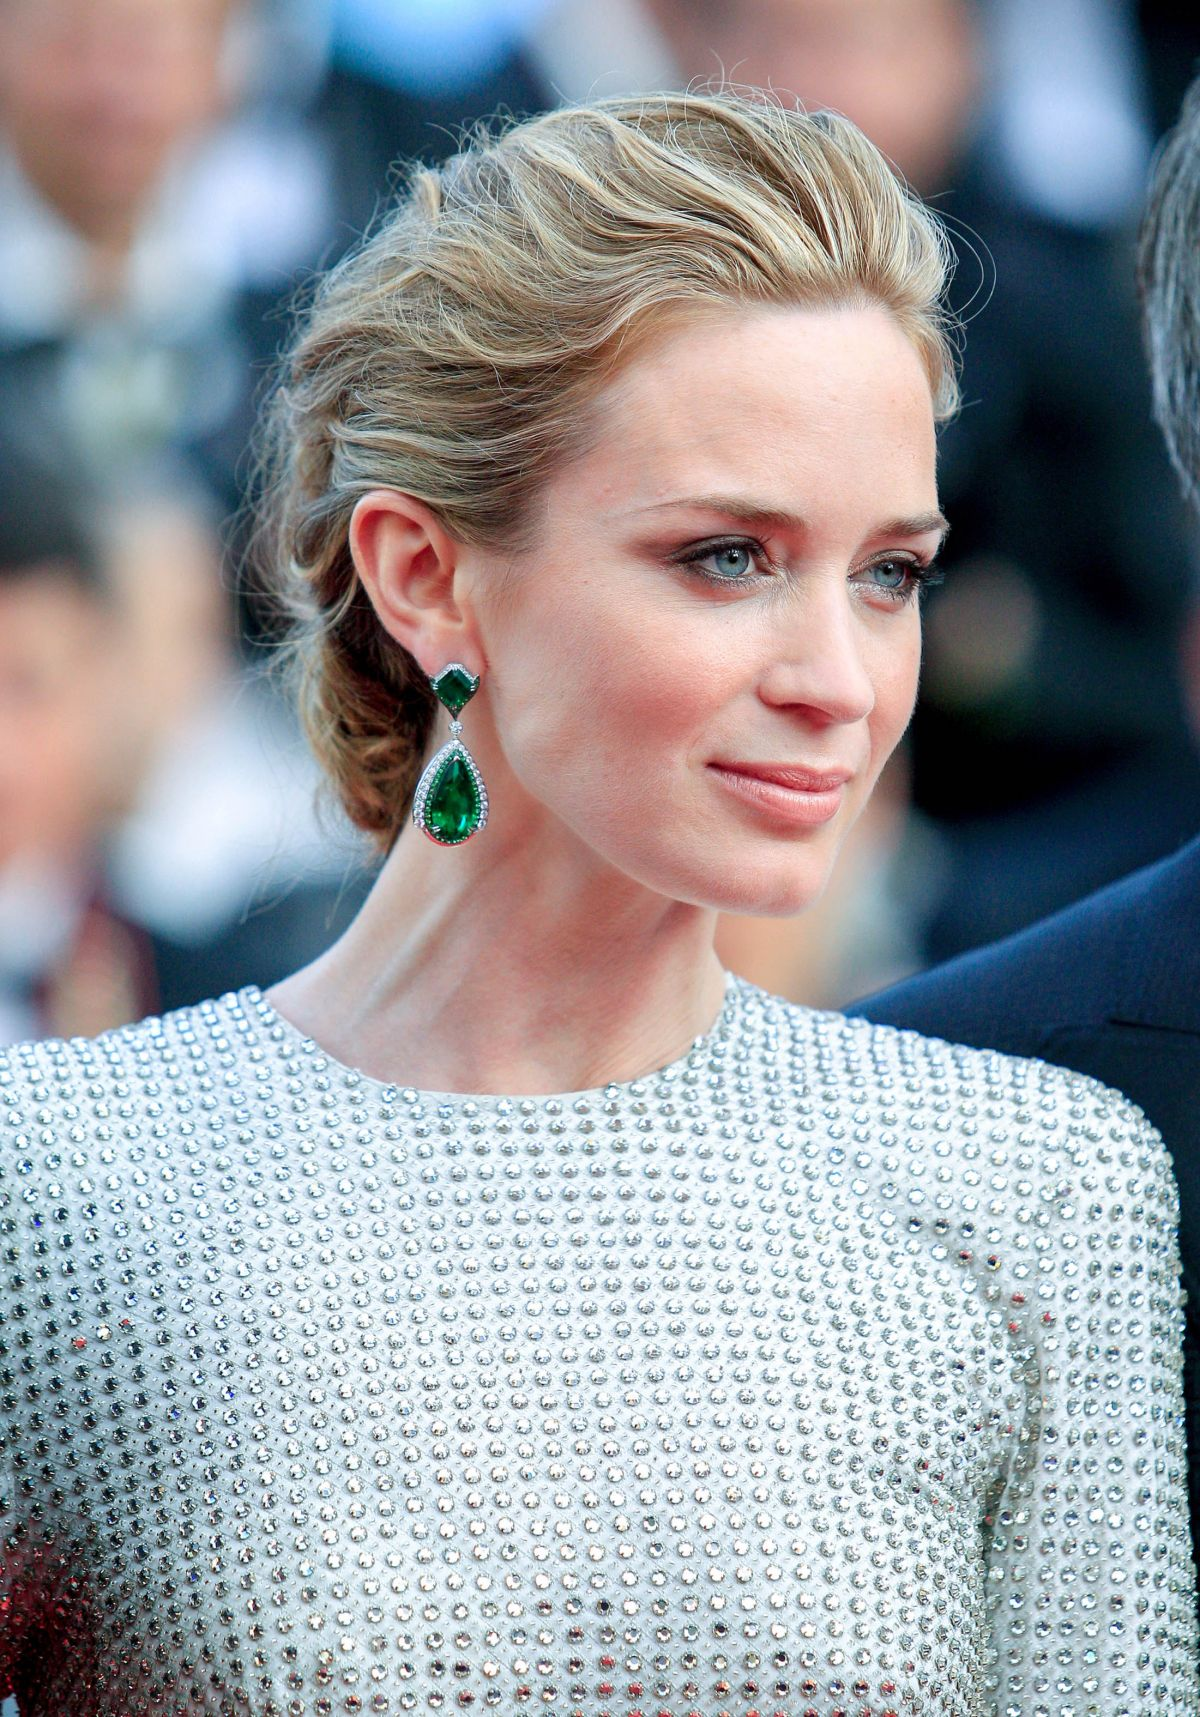 emily-blunt-at-sicario-premiere-at-cannes-film-festival_2.jpg